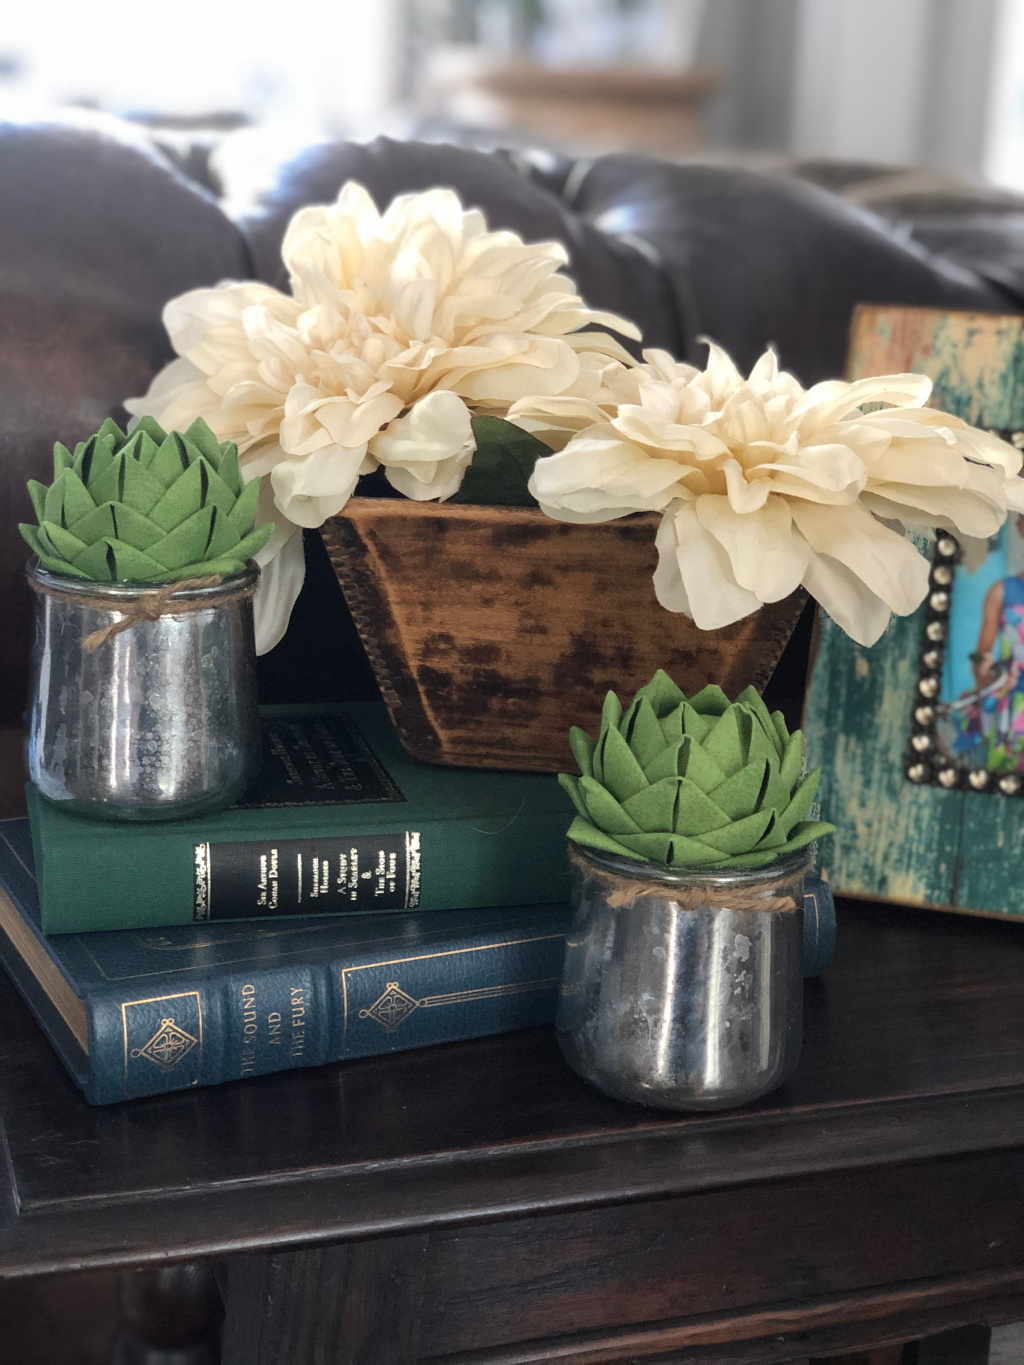 Finished DIY fabric succulents